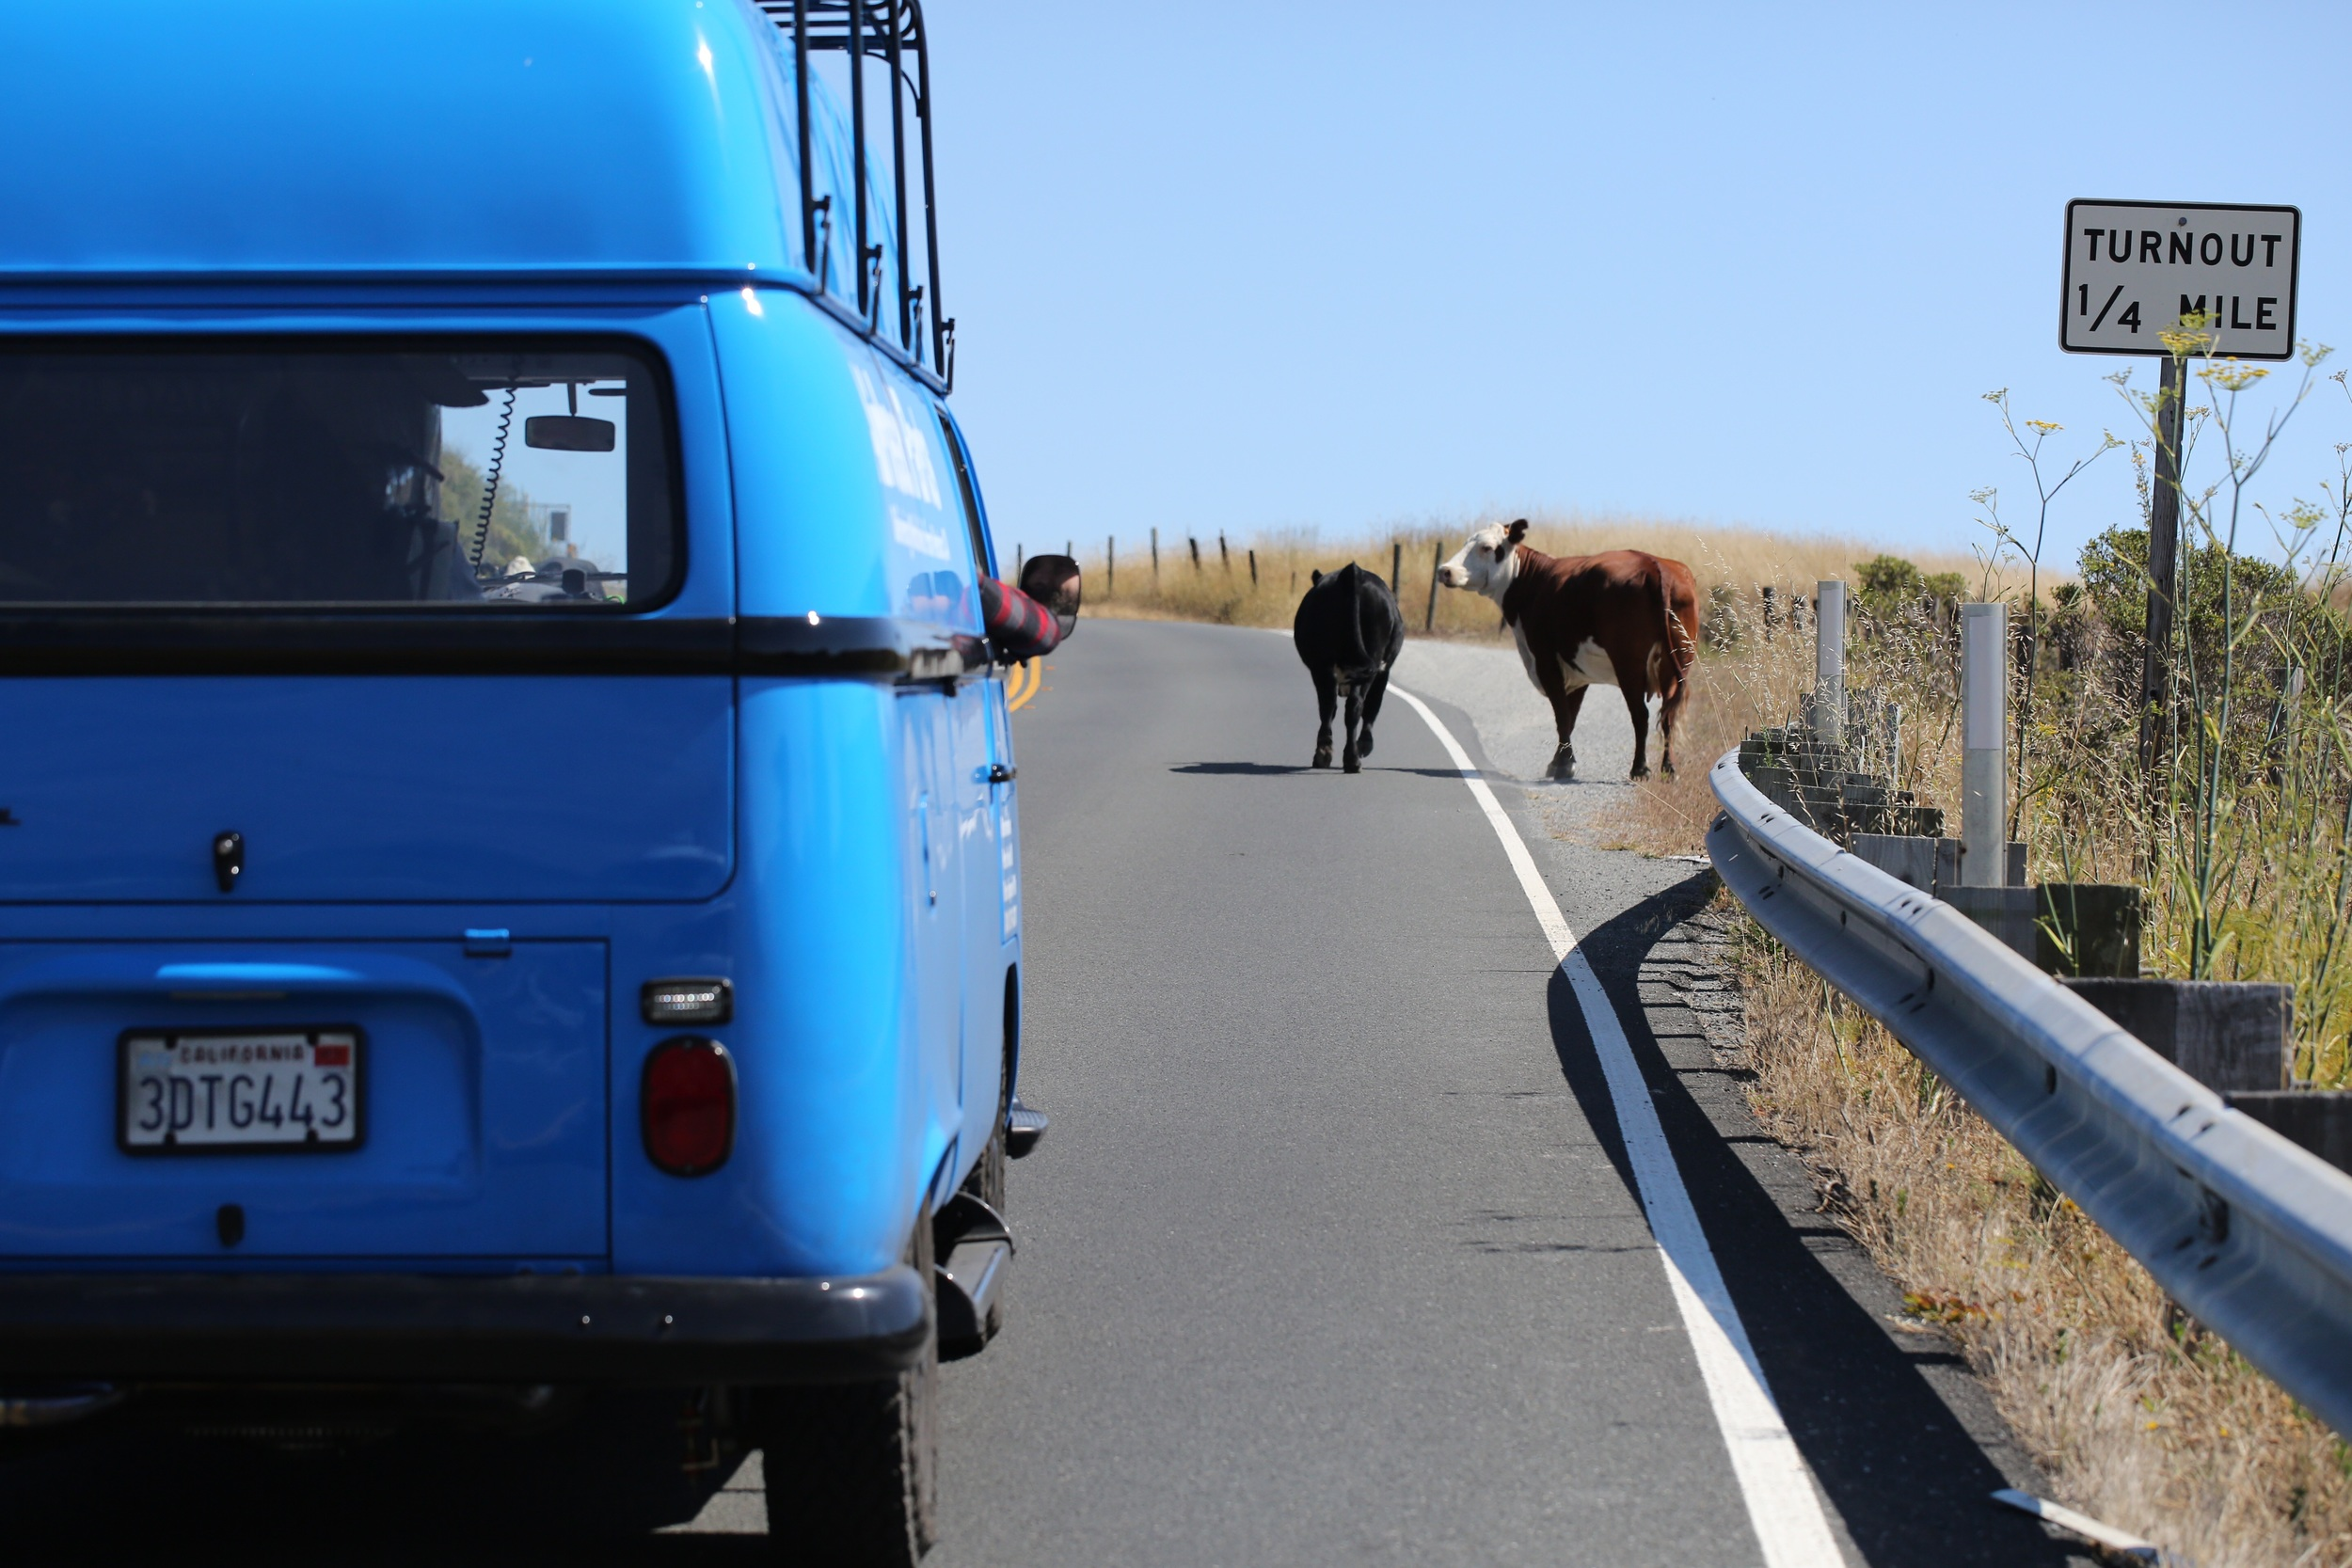 Cows blocking the road